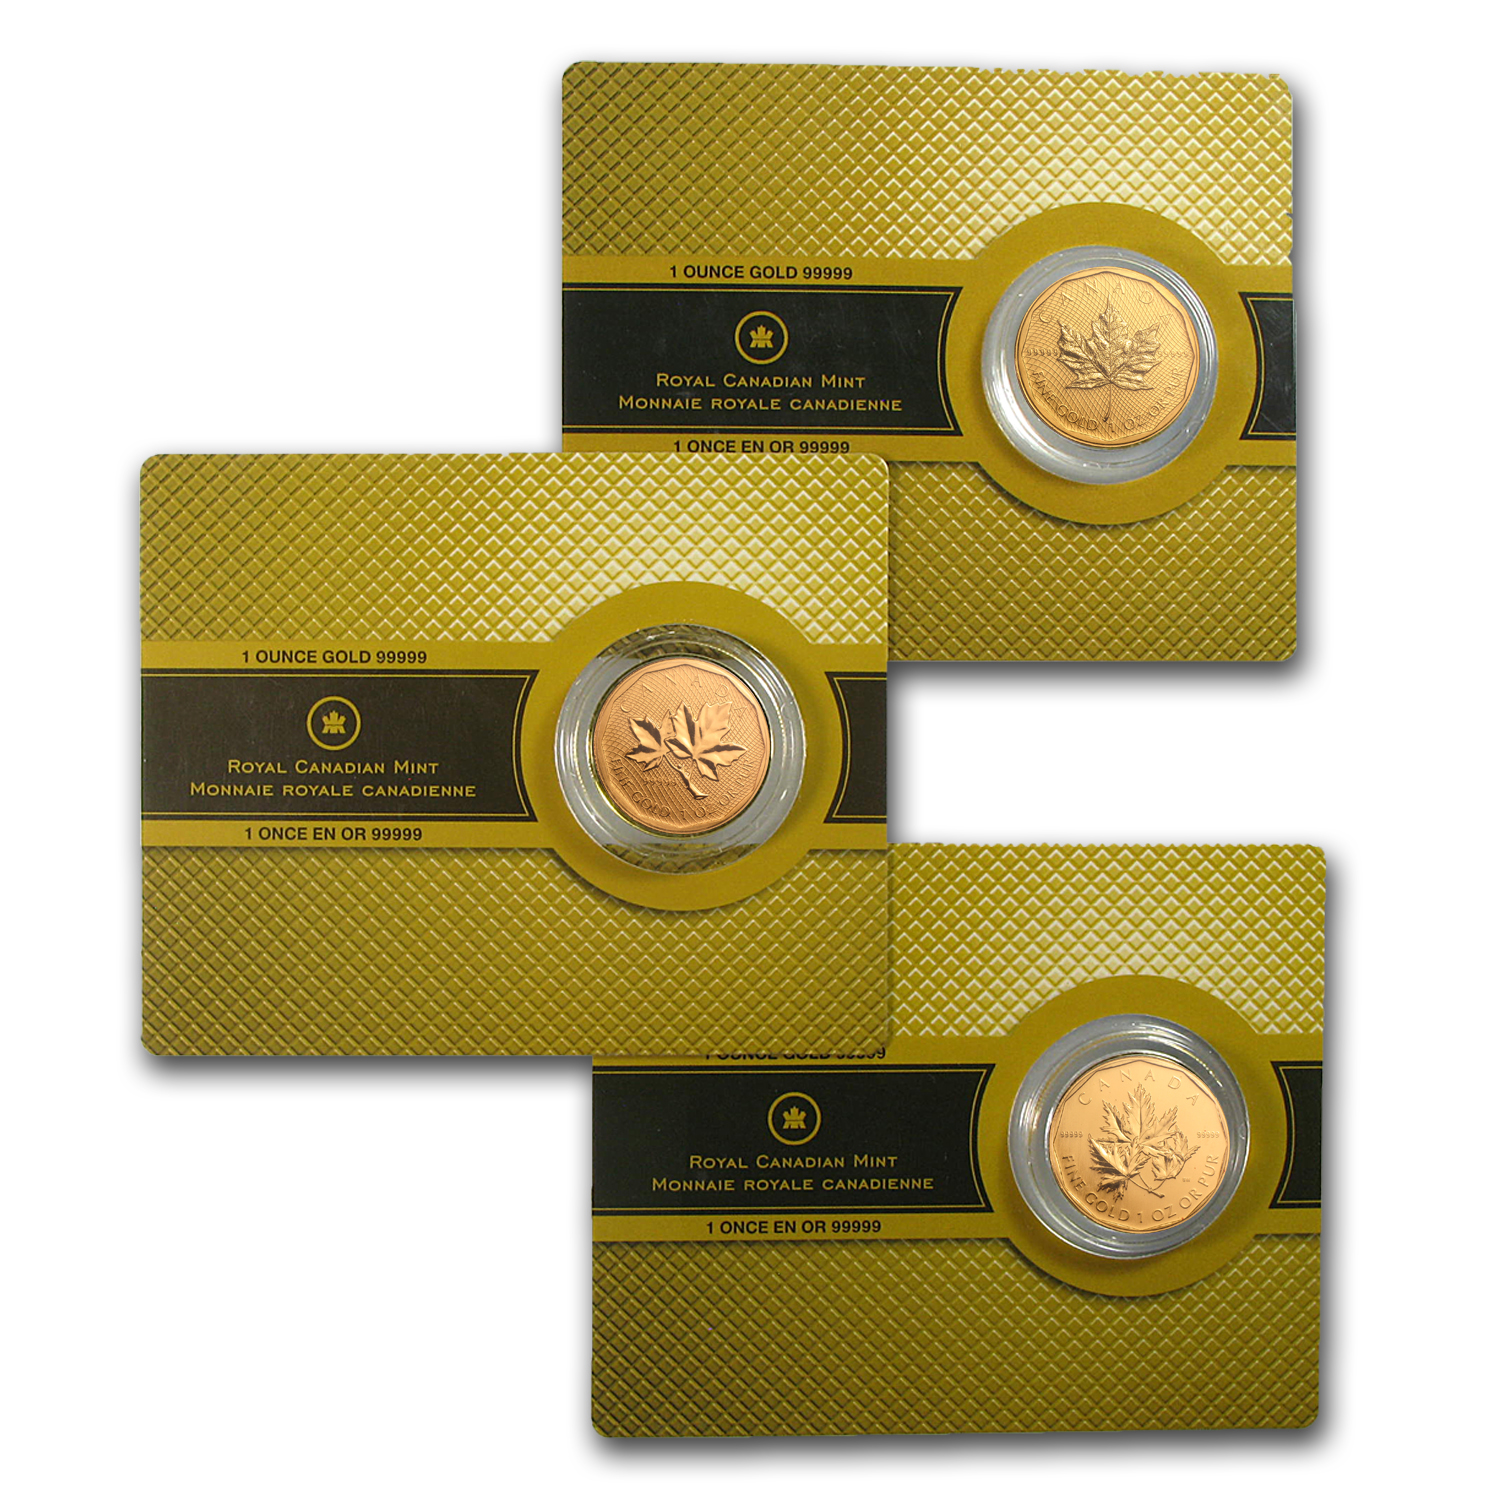 3-Coin .99999 Fine Gold Canadian Maple Leaf Set 2007-2009